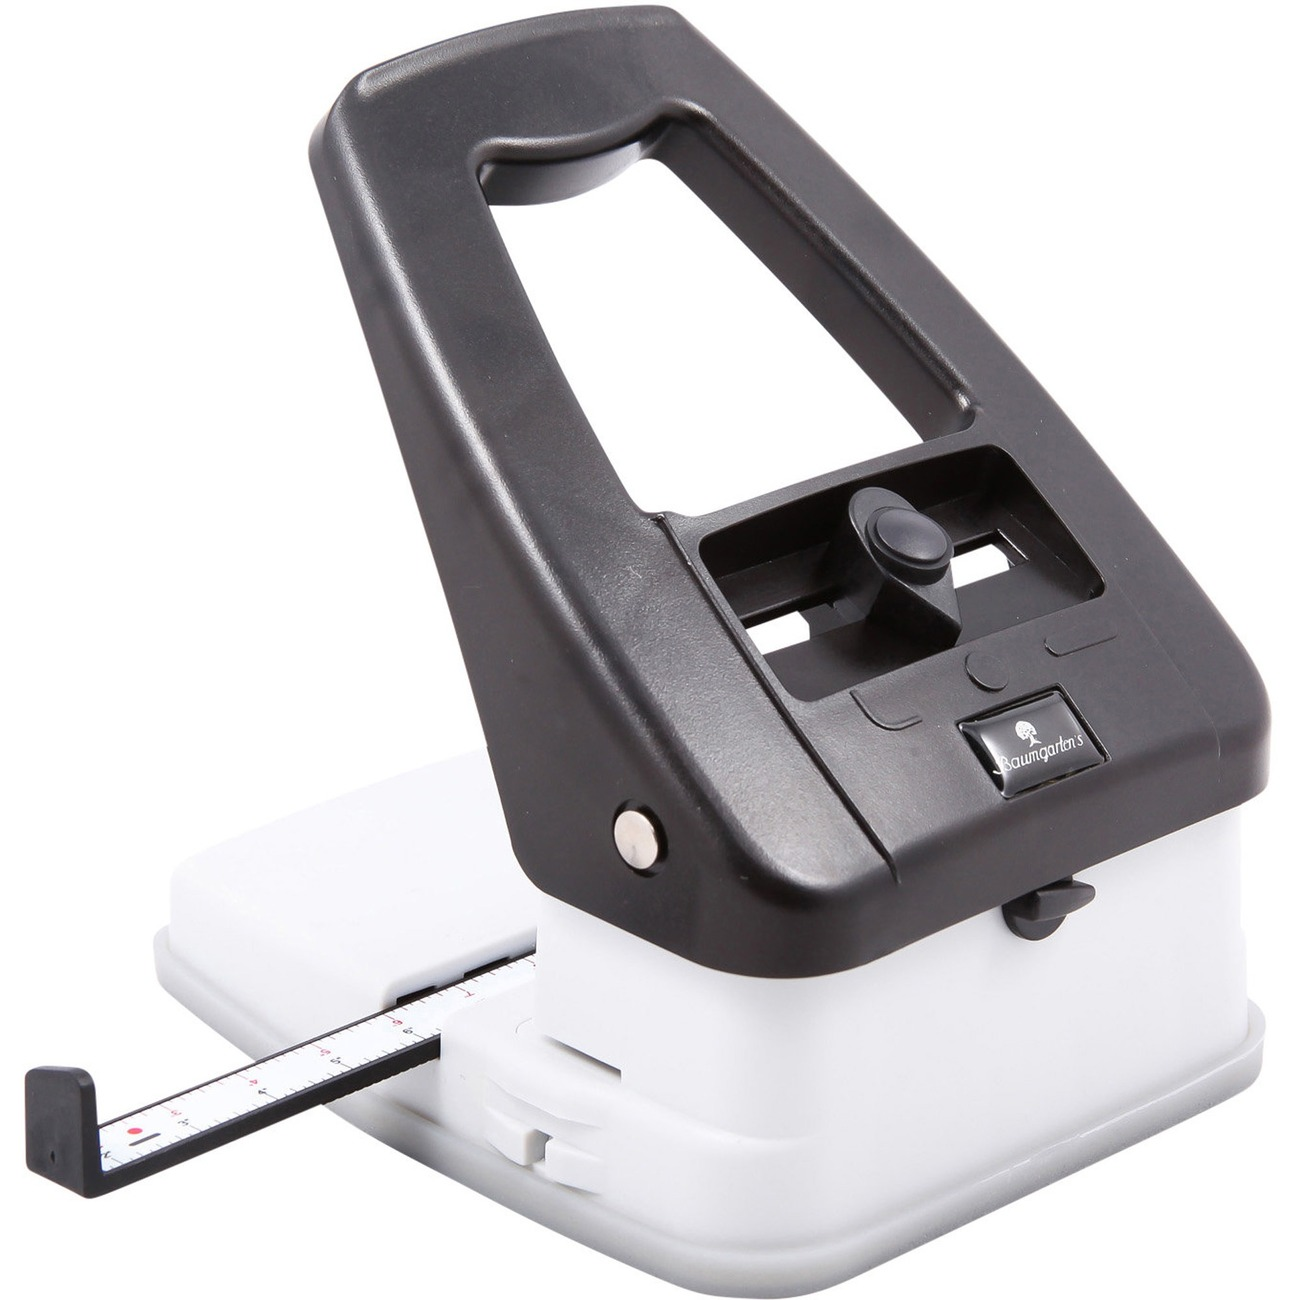 Canadian business distributors inc office supplies general use this three in one slot punch for standard name badges and id cards 916 x 18 this handy office assistant punches 14 holes slots 18 x 12 colourmoves